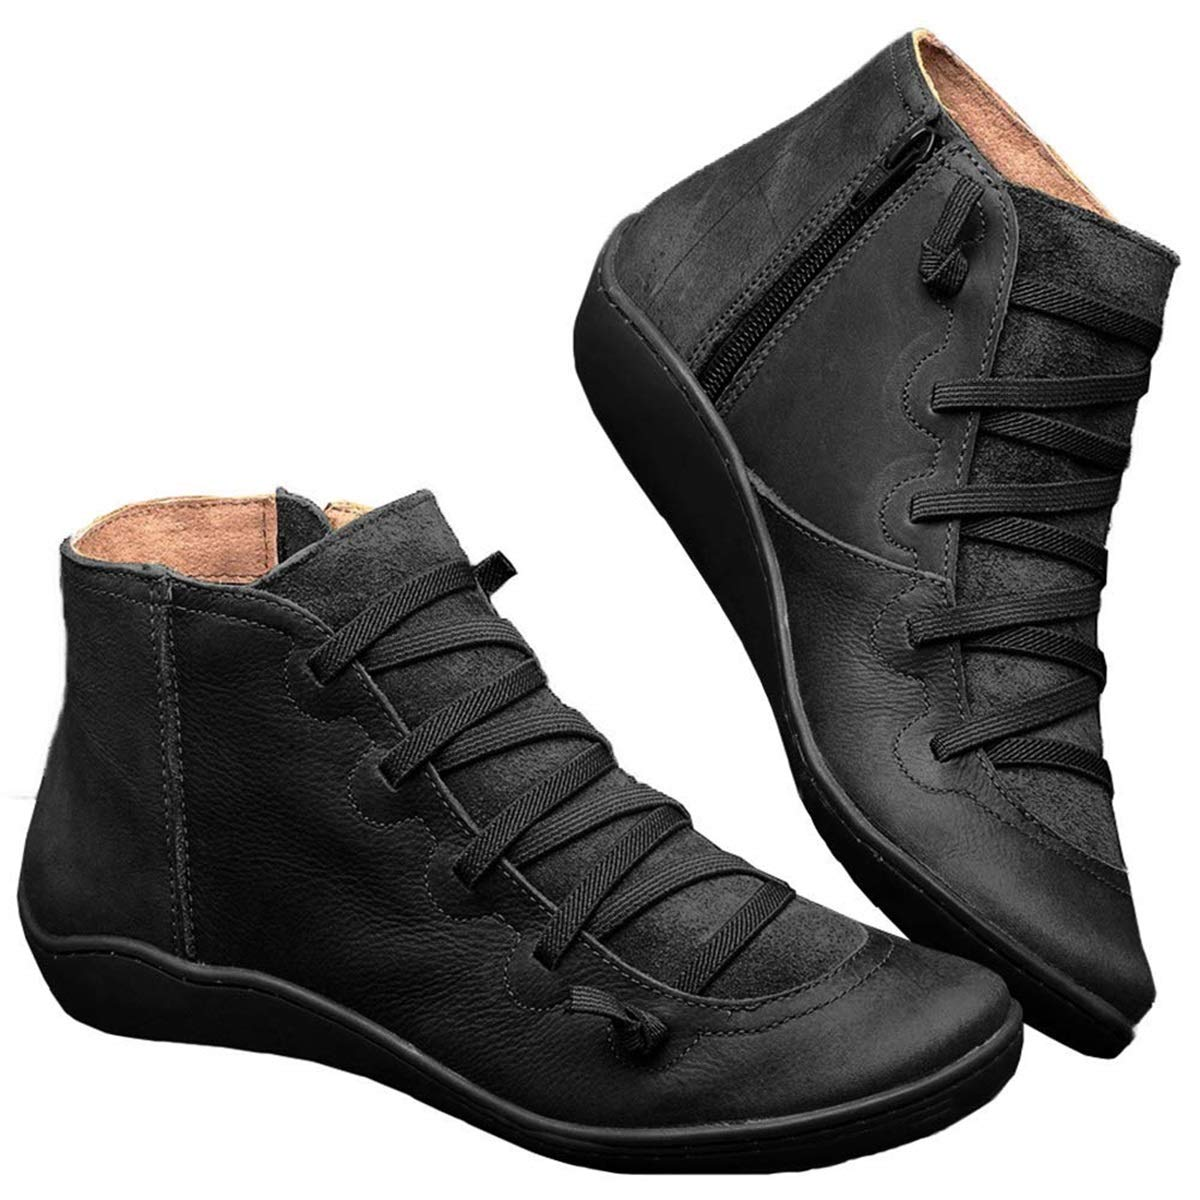 GD0001 New Arch Support Boots- Women's Leather Casual Shoes Side Zipper Ankle Booties by GD0001